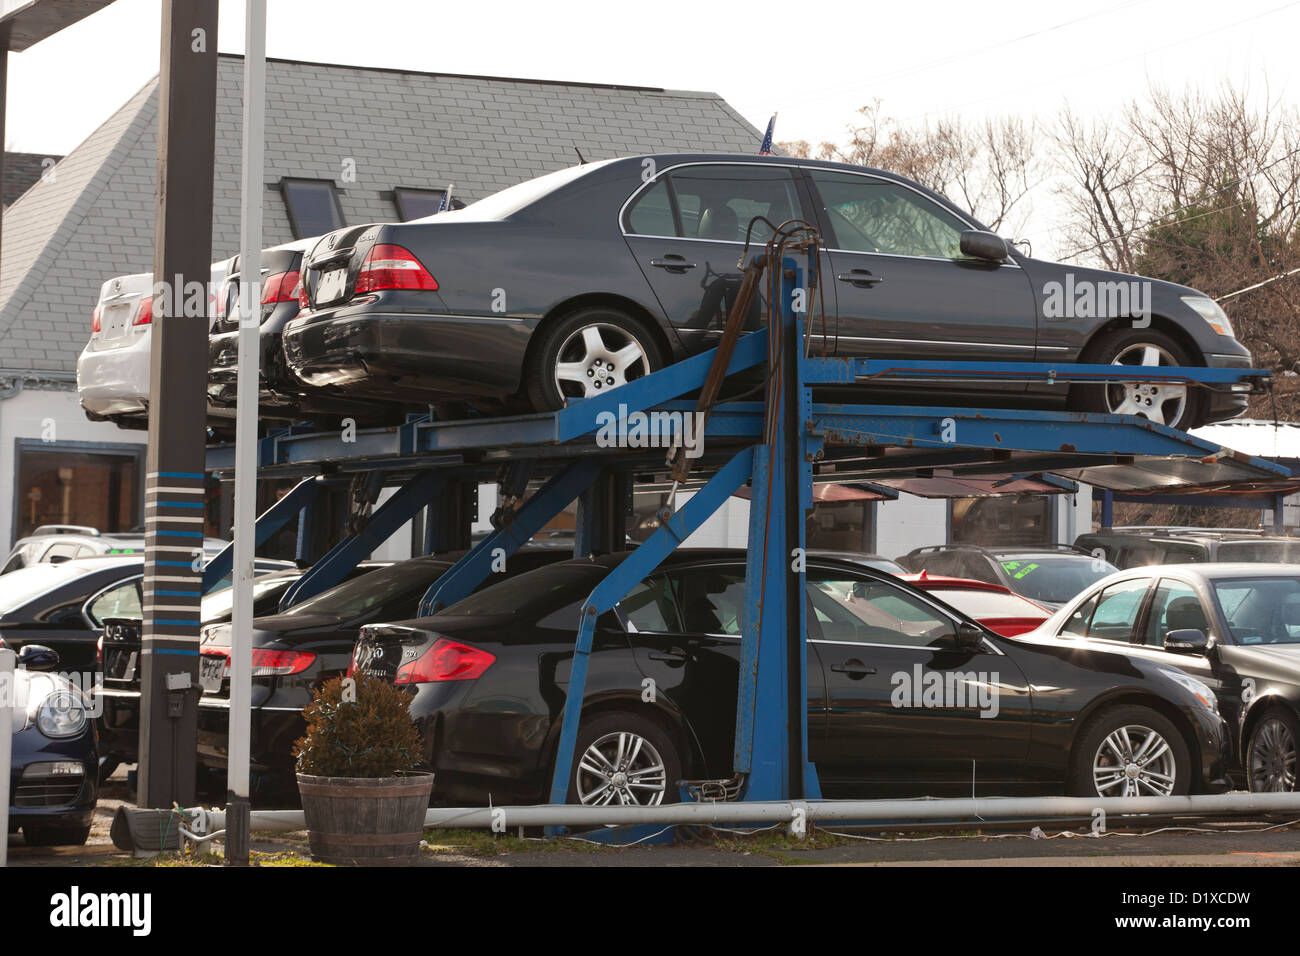 Voitures sur parking ascenseur Photo Stock